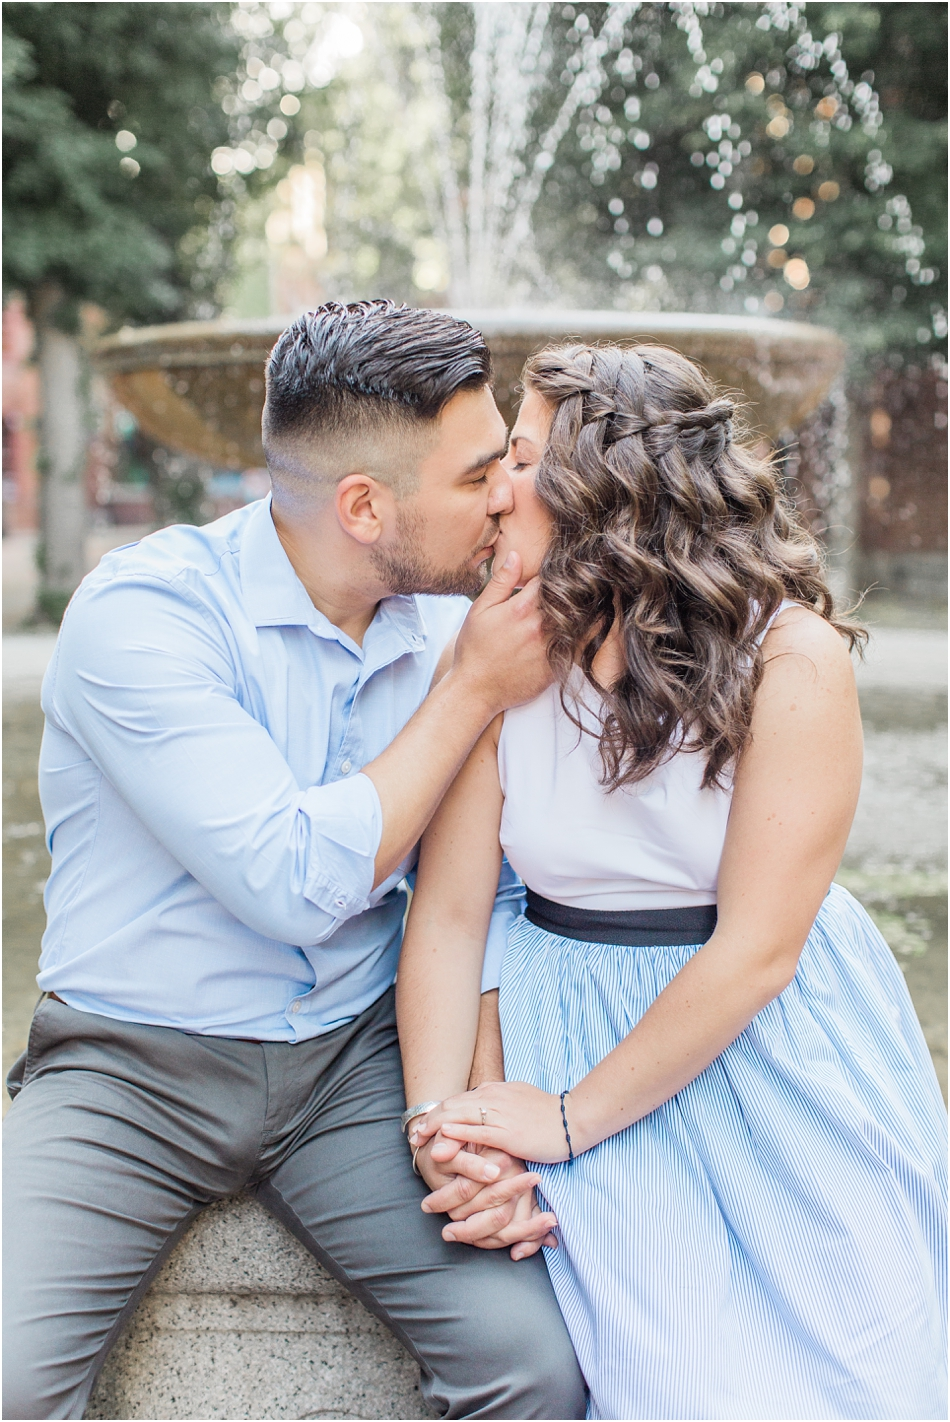 north_end_downtown_pizza_little_italy_engagement_boston_massachusetts_cape_cod_new_england_wedding_photographer_Meredith_Jane_Photography_photo_1742.jpg